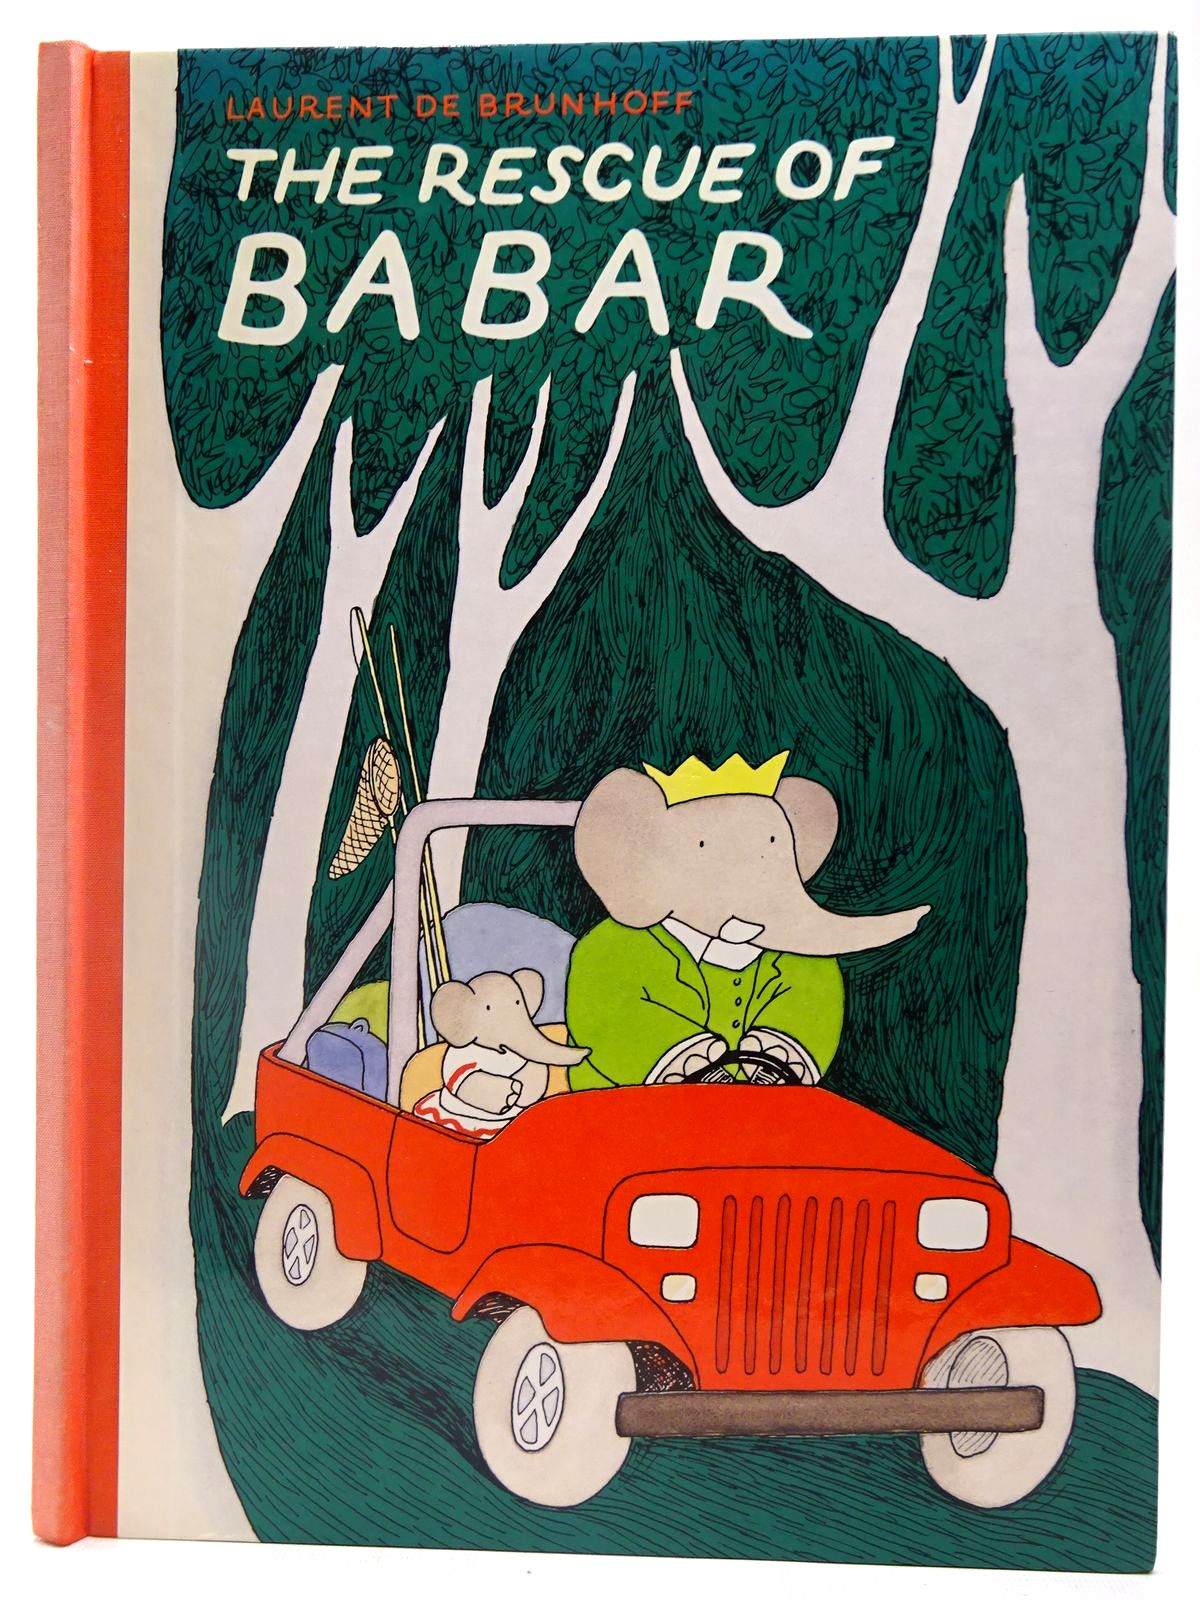 Photo of THE RESCUE OF BABAR written by De Brunhoff, Laurent illustrated by De Brunhoff, Laurent published by Methuen Children's Books Ltd. (STOCK CODE: 2127384)  for sale by Stella & Rose's Books